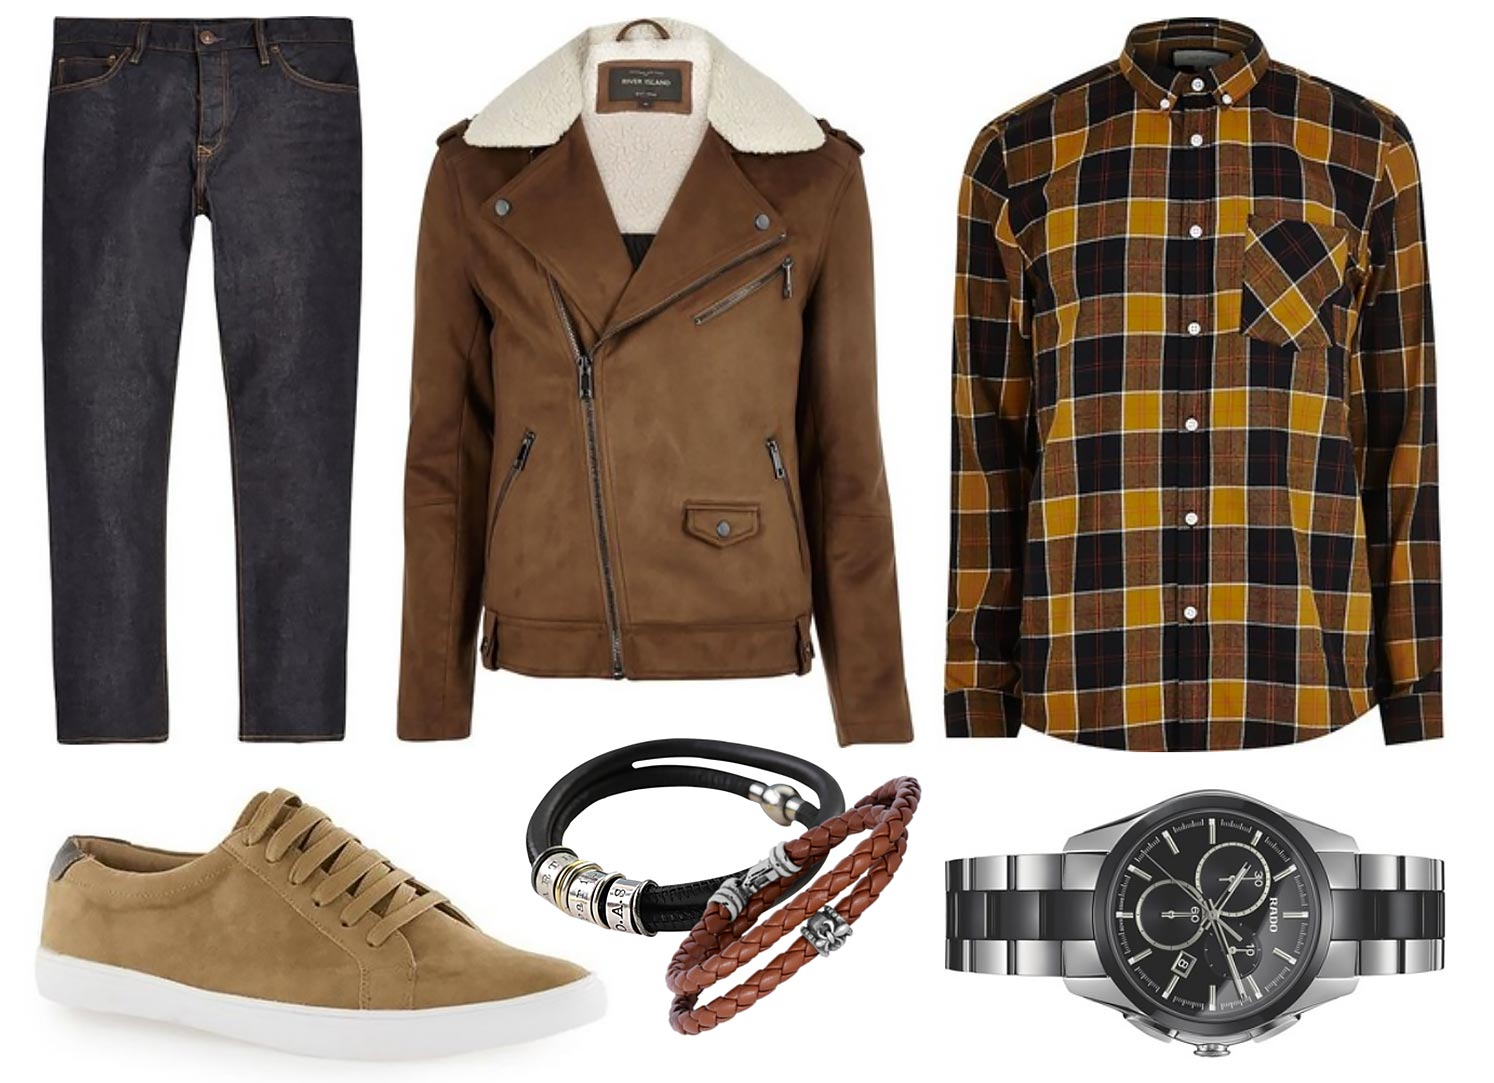 mens-dickies-jeans-outfit-fashionable